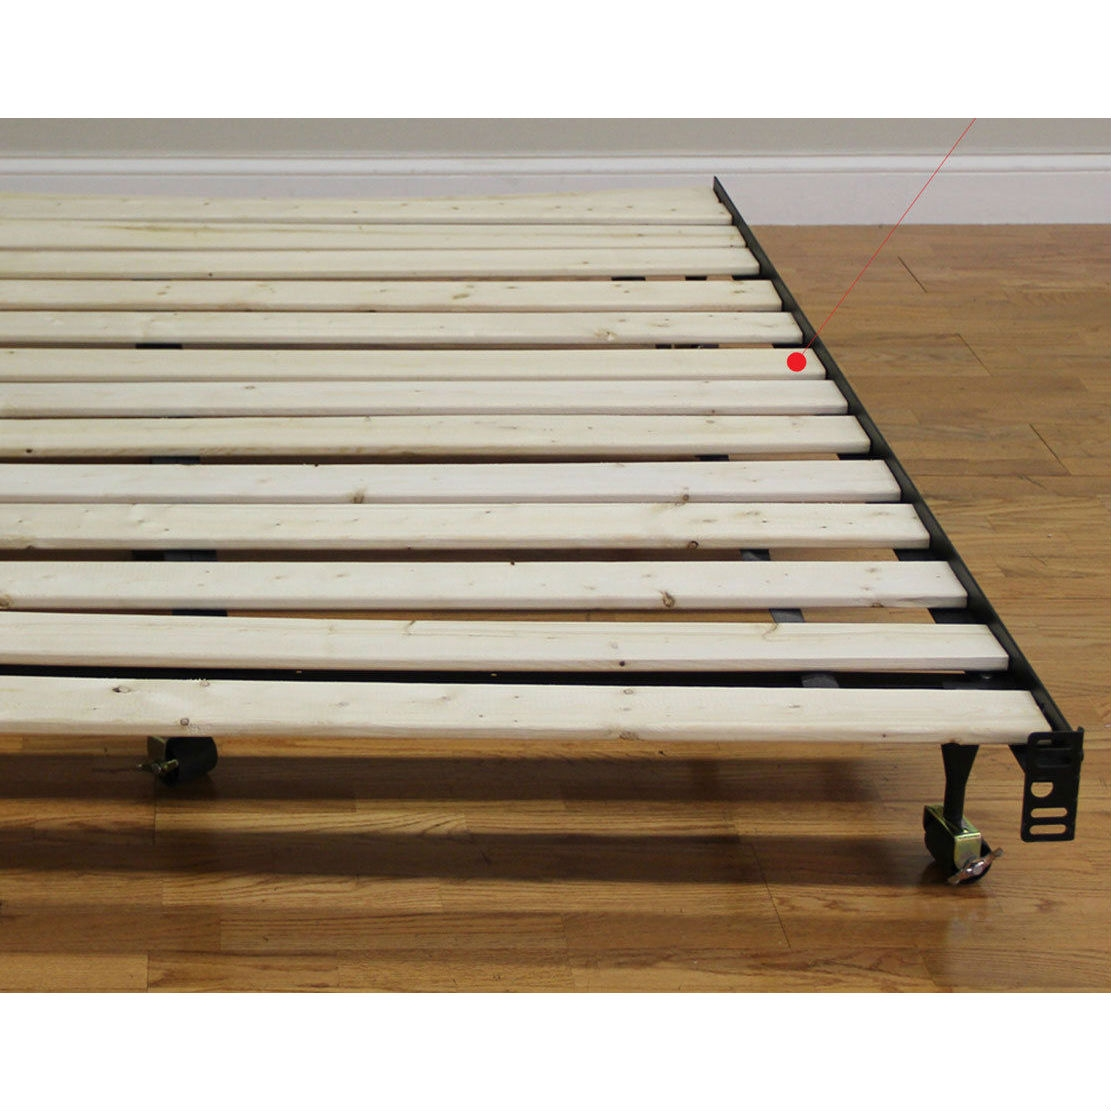 queen size slats for bed frame or platform beds - made in usa